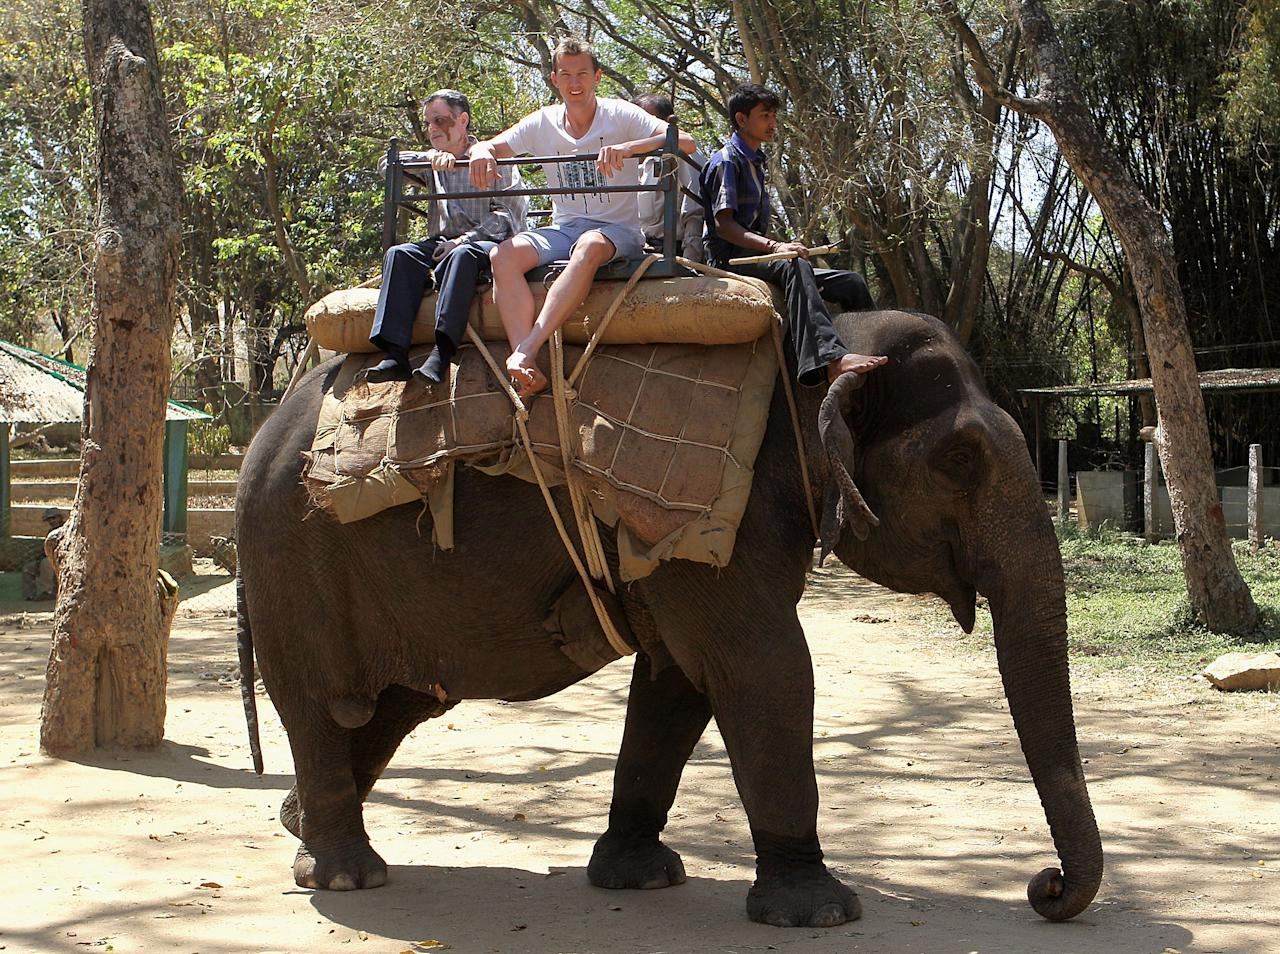 BANGALORE, INDIA - MARCH 12:  Brett Lee of Australia rides on an Indian elephant during a visit to the Bannerghatta Biological Park on March 12, 2011 in Bangalore, India.  (Photo by Hamish Blair/Getty Images)